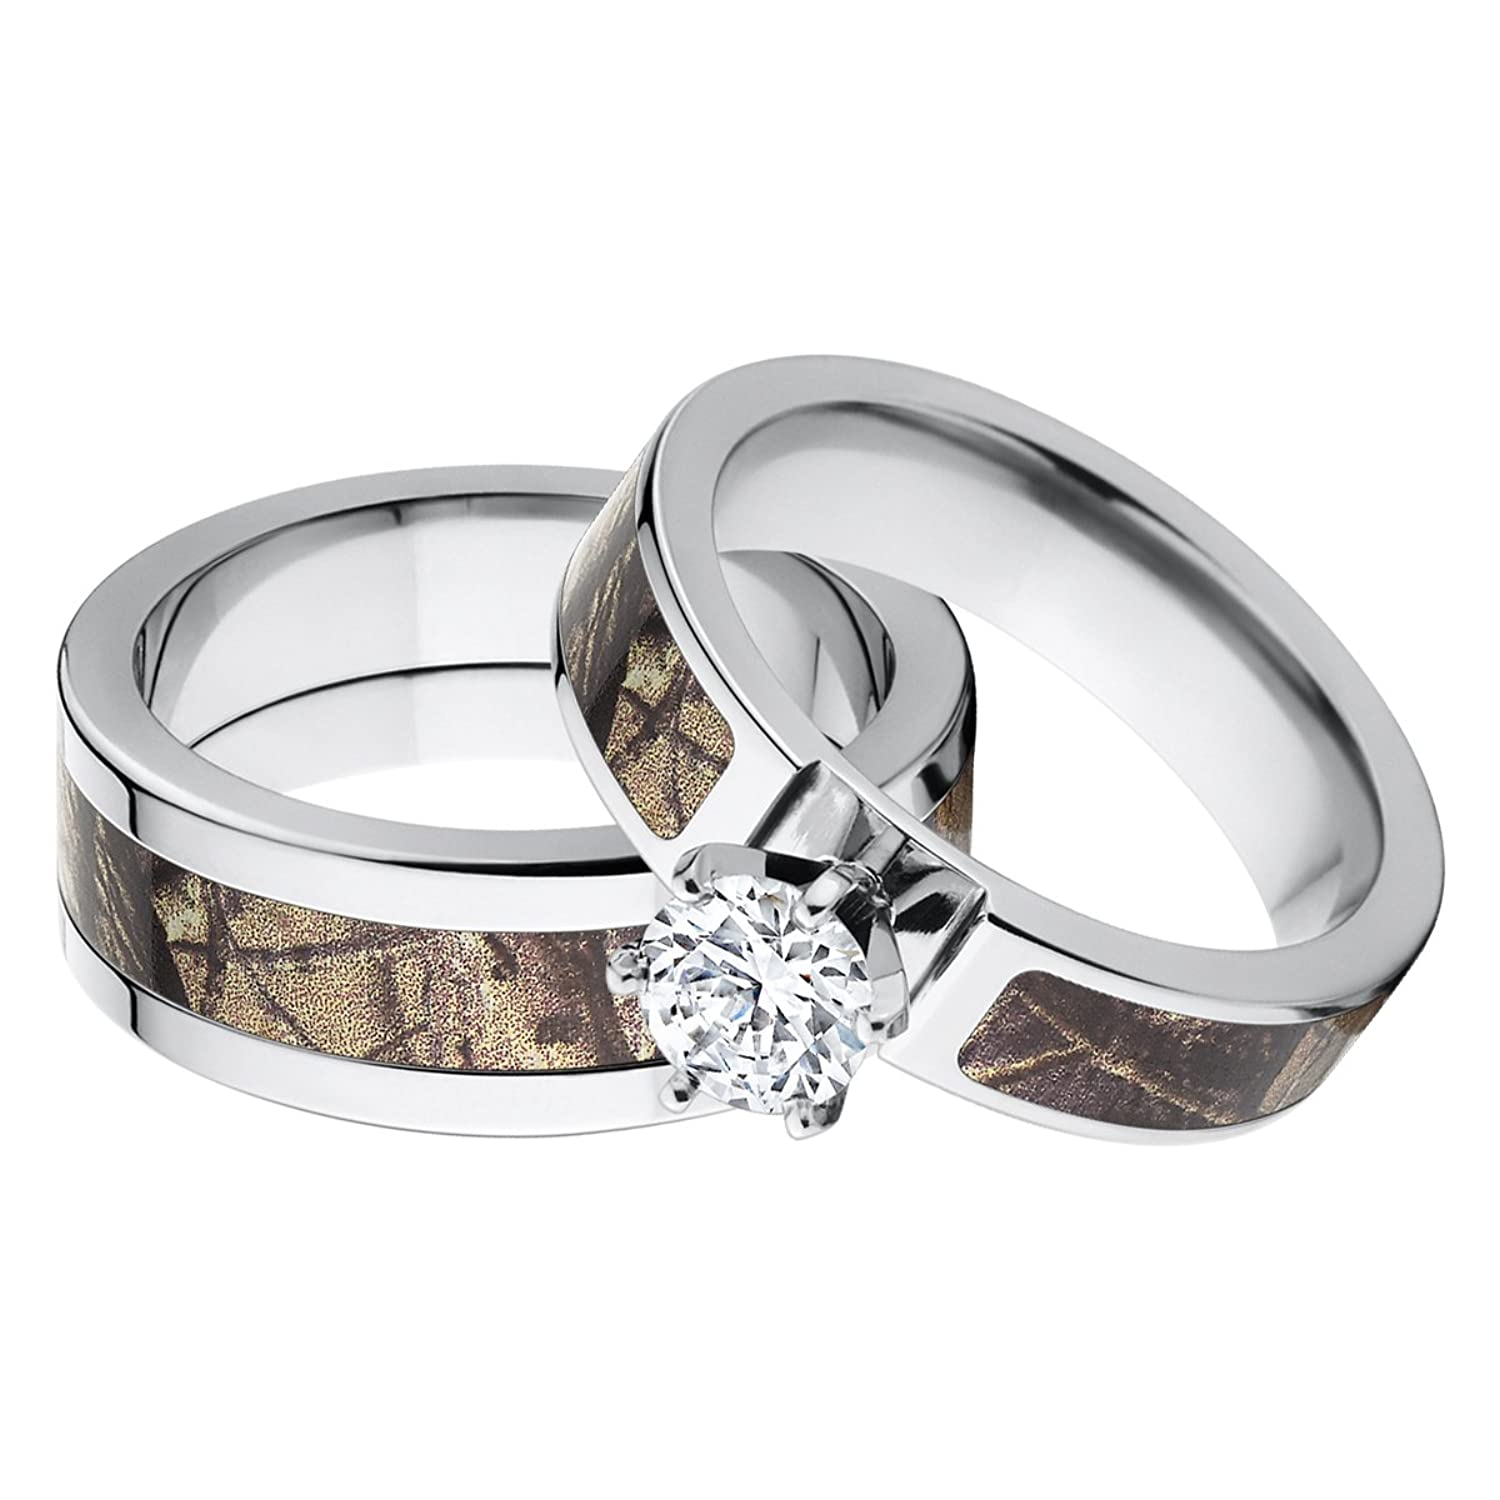 amazoncom his and hers matching realtree ap camouflage wedding ring set jewelry - Camo Wedding Rings Sets